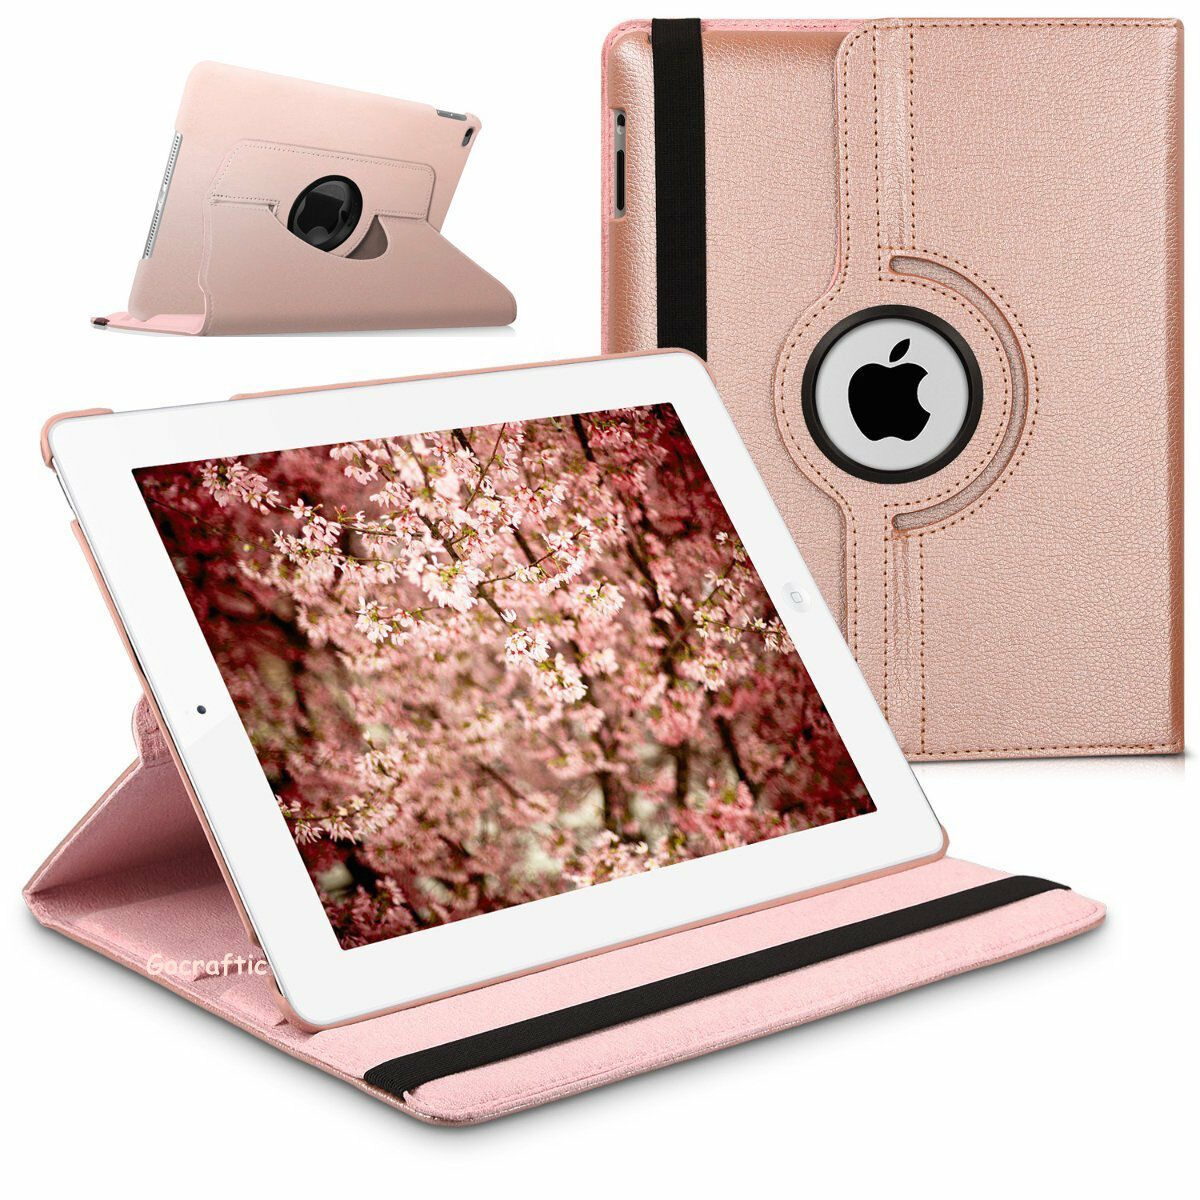 Leather 360 Degree Rotating Smart Stand Case Cover For All Ipad 2 3 4 1 Of 7free Shipping Models